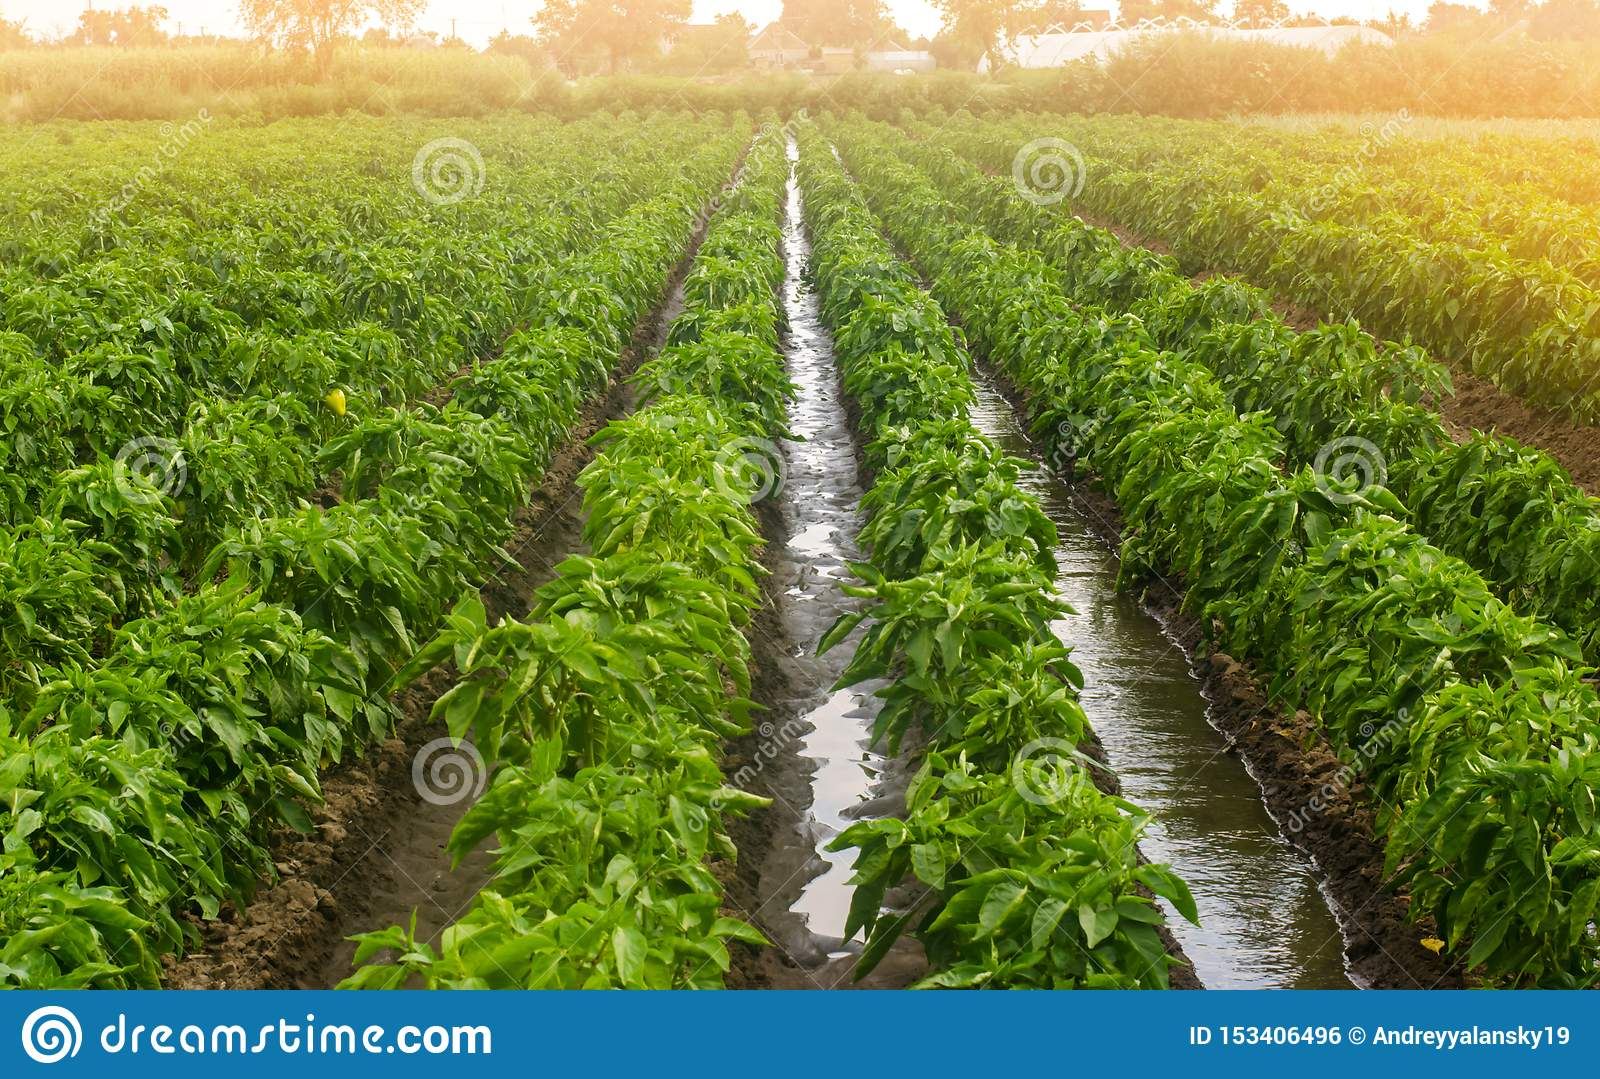 Traditional watering pepper plantations. Farming and agriculture. Cultivation, care and harvesting. Grow agricultural products